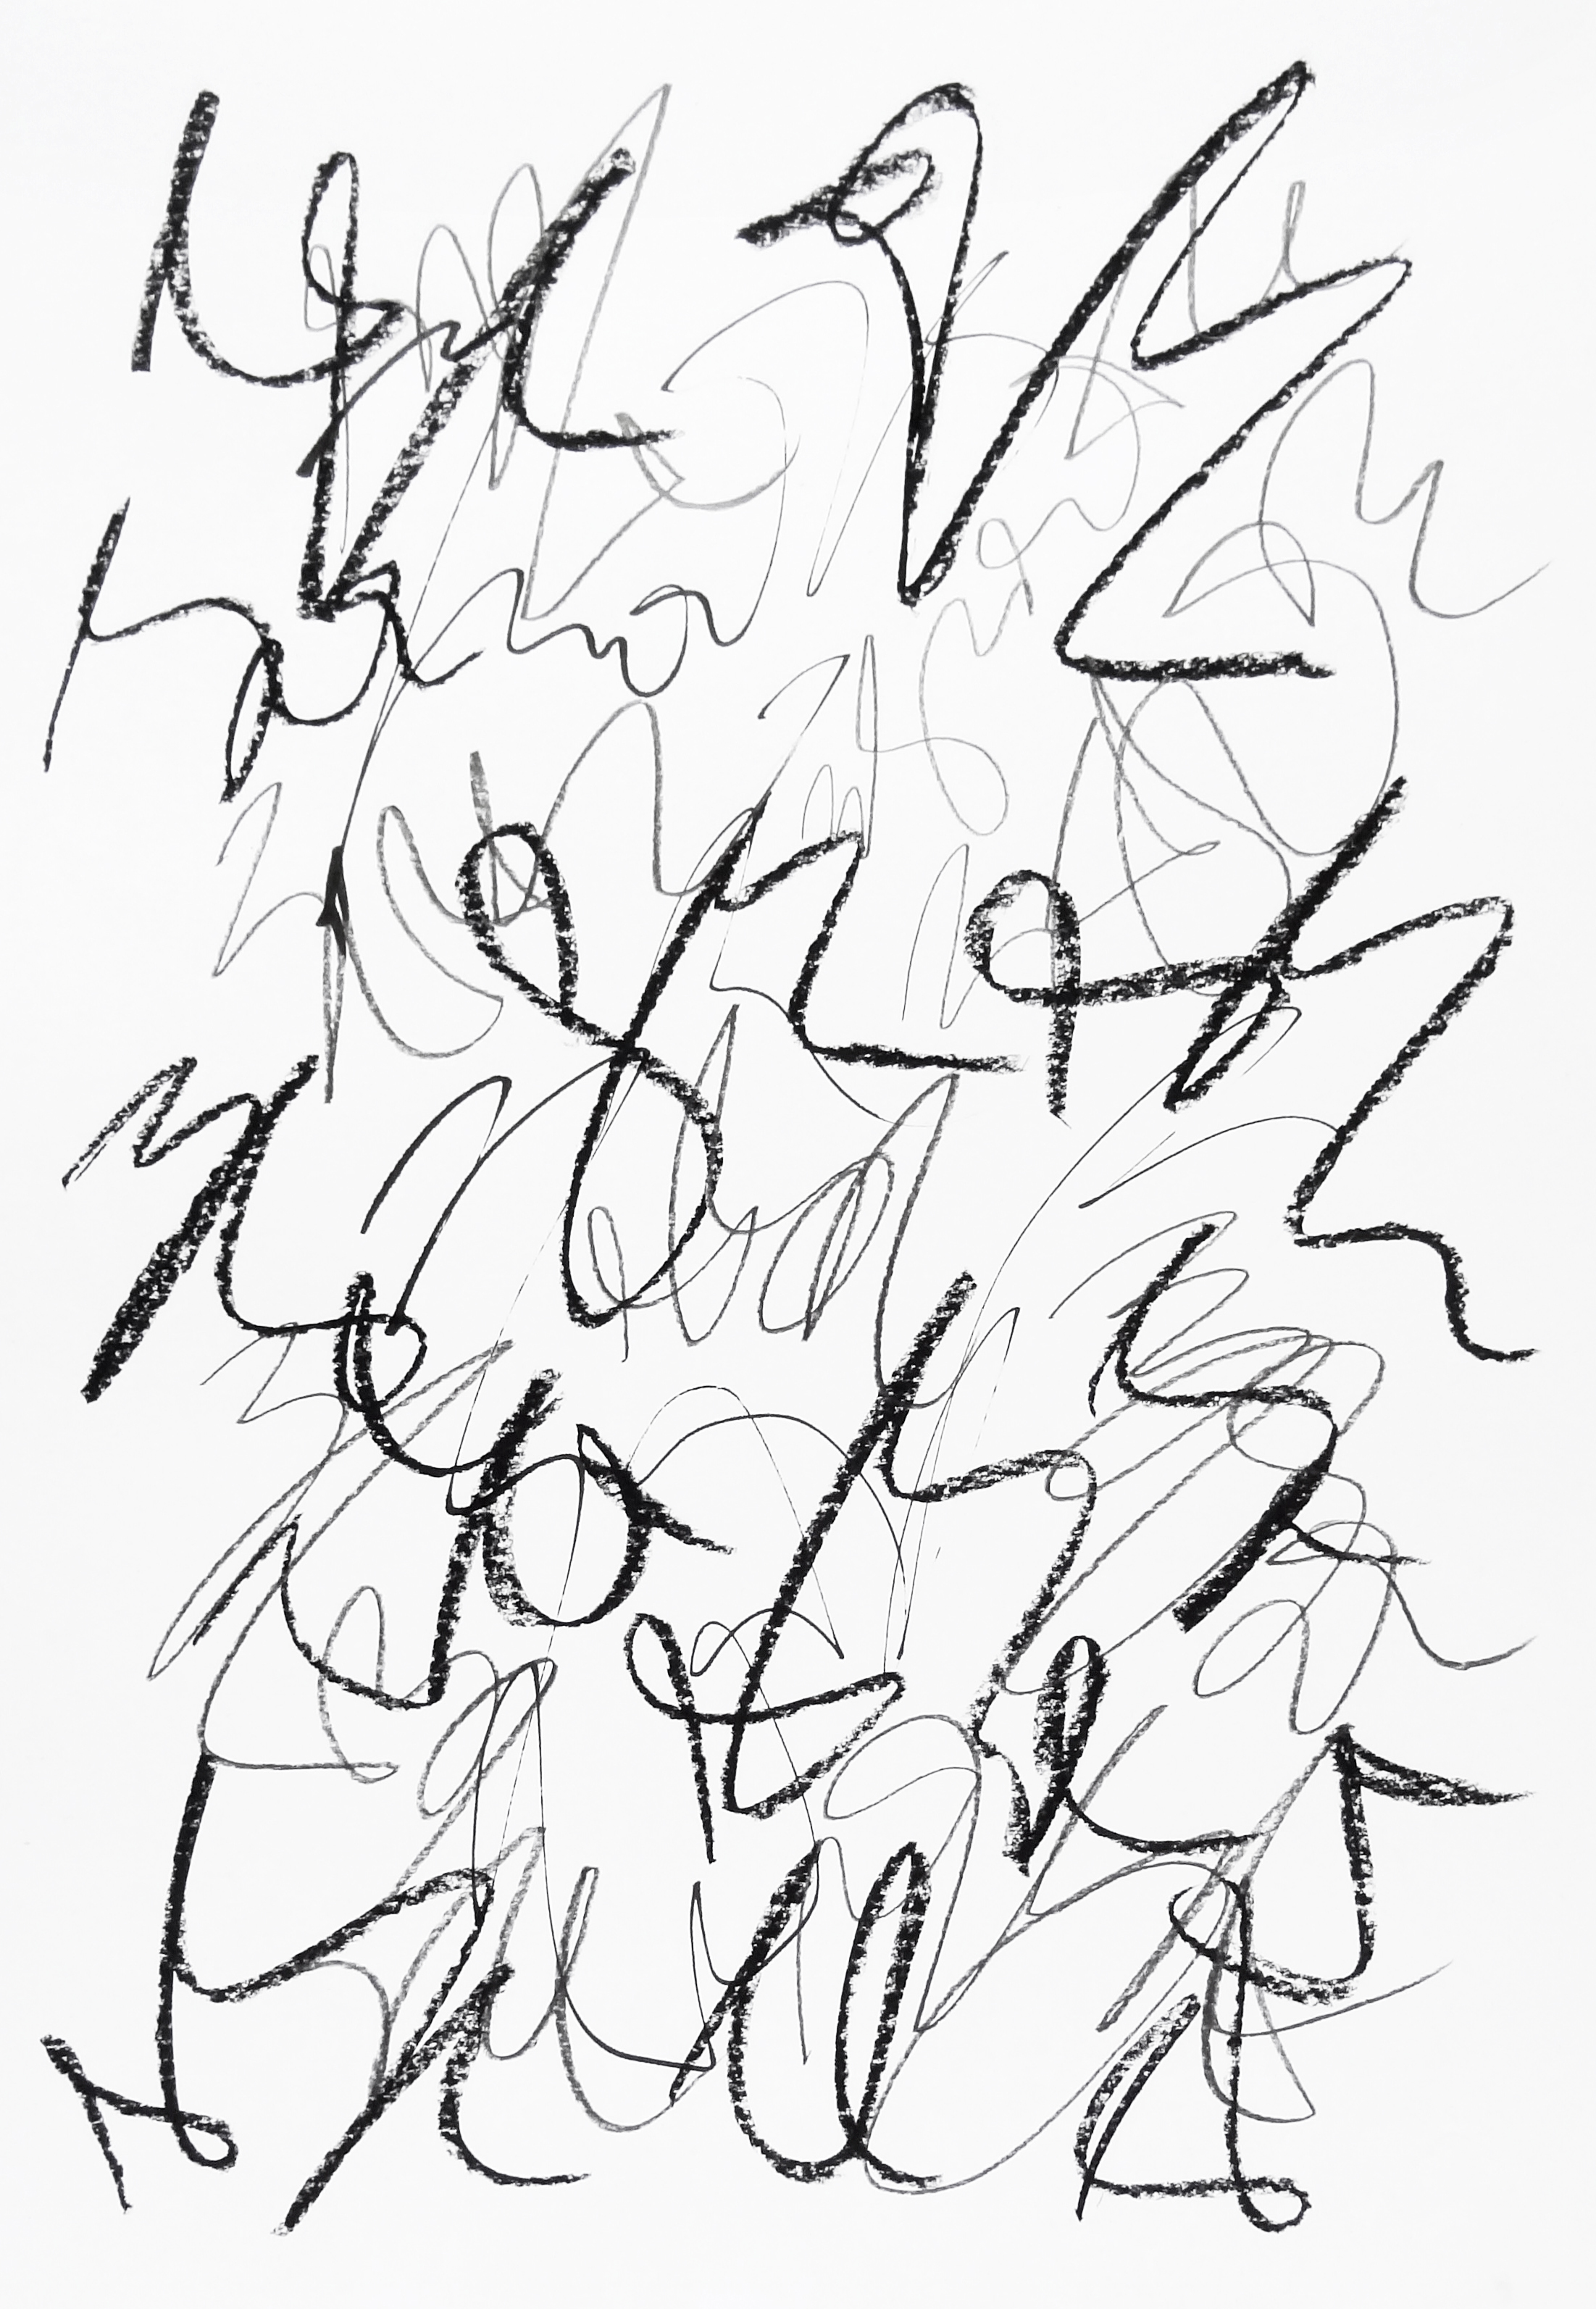 rhythm and flow studies, 2019 calligraphy ink, pencil and chalk on paper 42,0 x 29,7 cm (13-19)